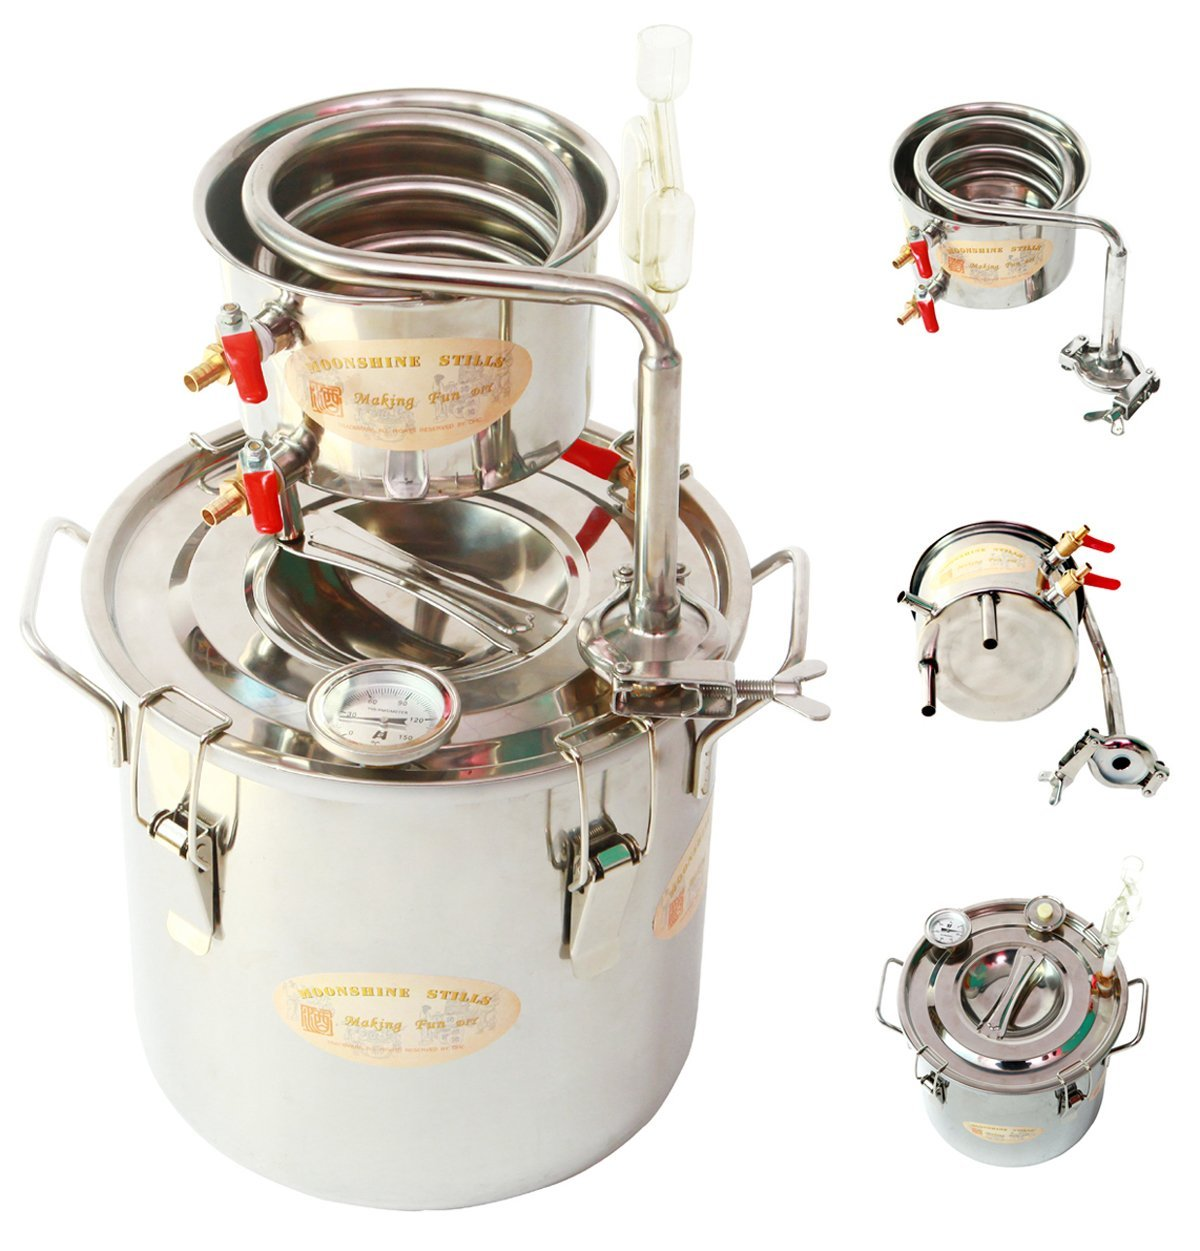 Moonshine Still Plans Simple Diagram Diy Gal Liters Home Alcohol Whiskey Distiller Stainless Steel Boiler Wine Making Kit